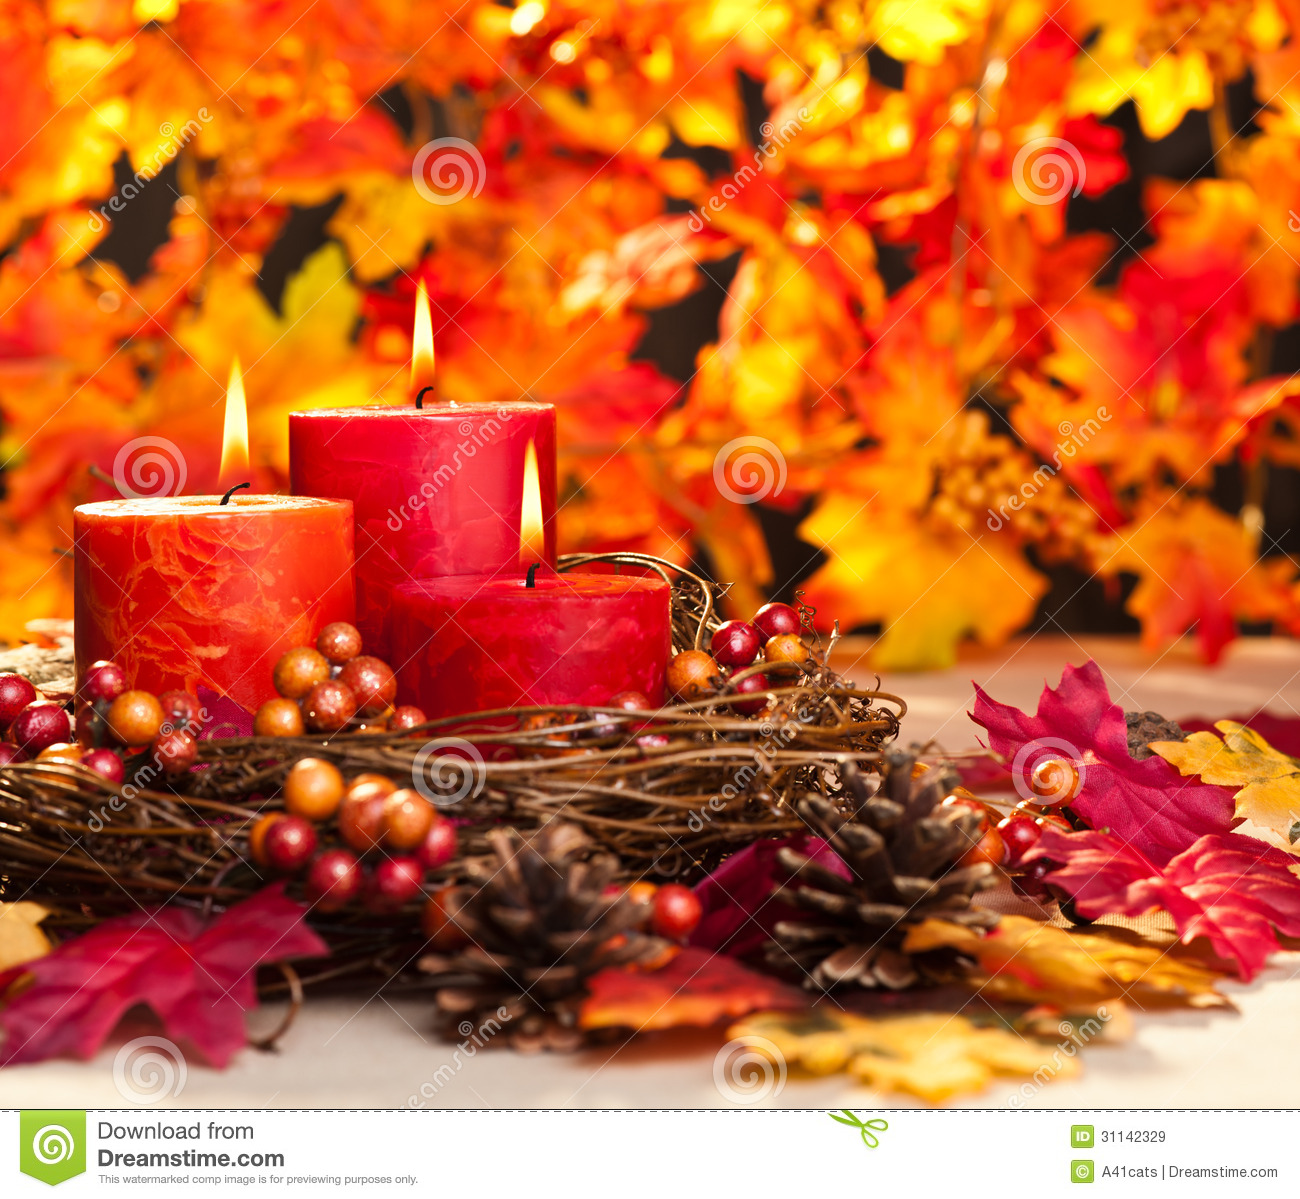 Autumn Candles Royalty Free Stock Images - Image: 31142329